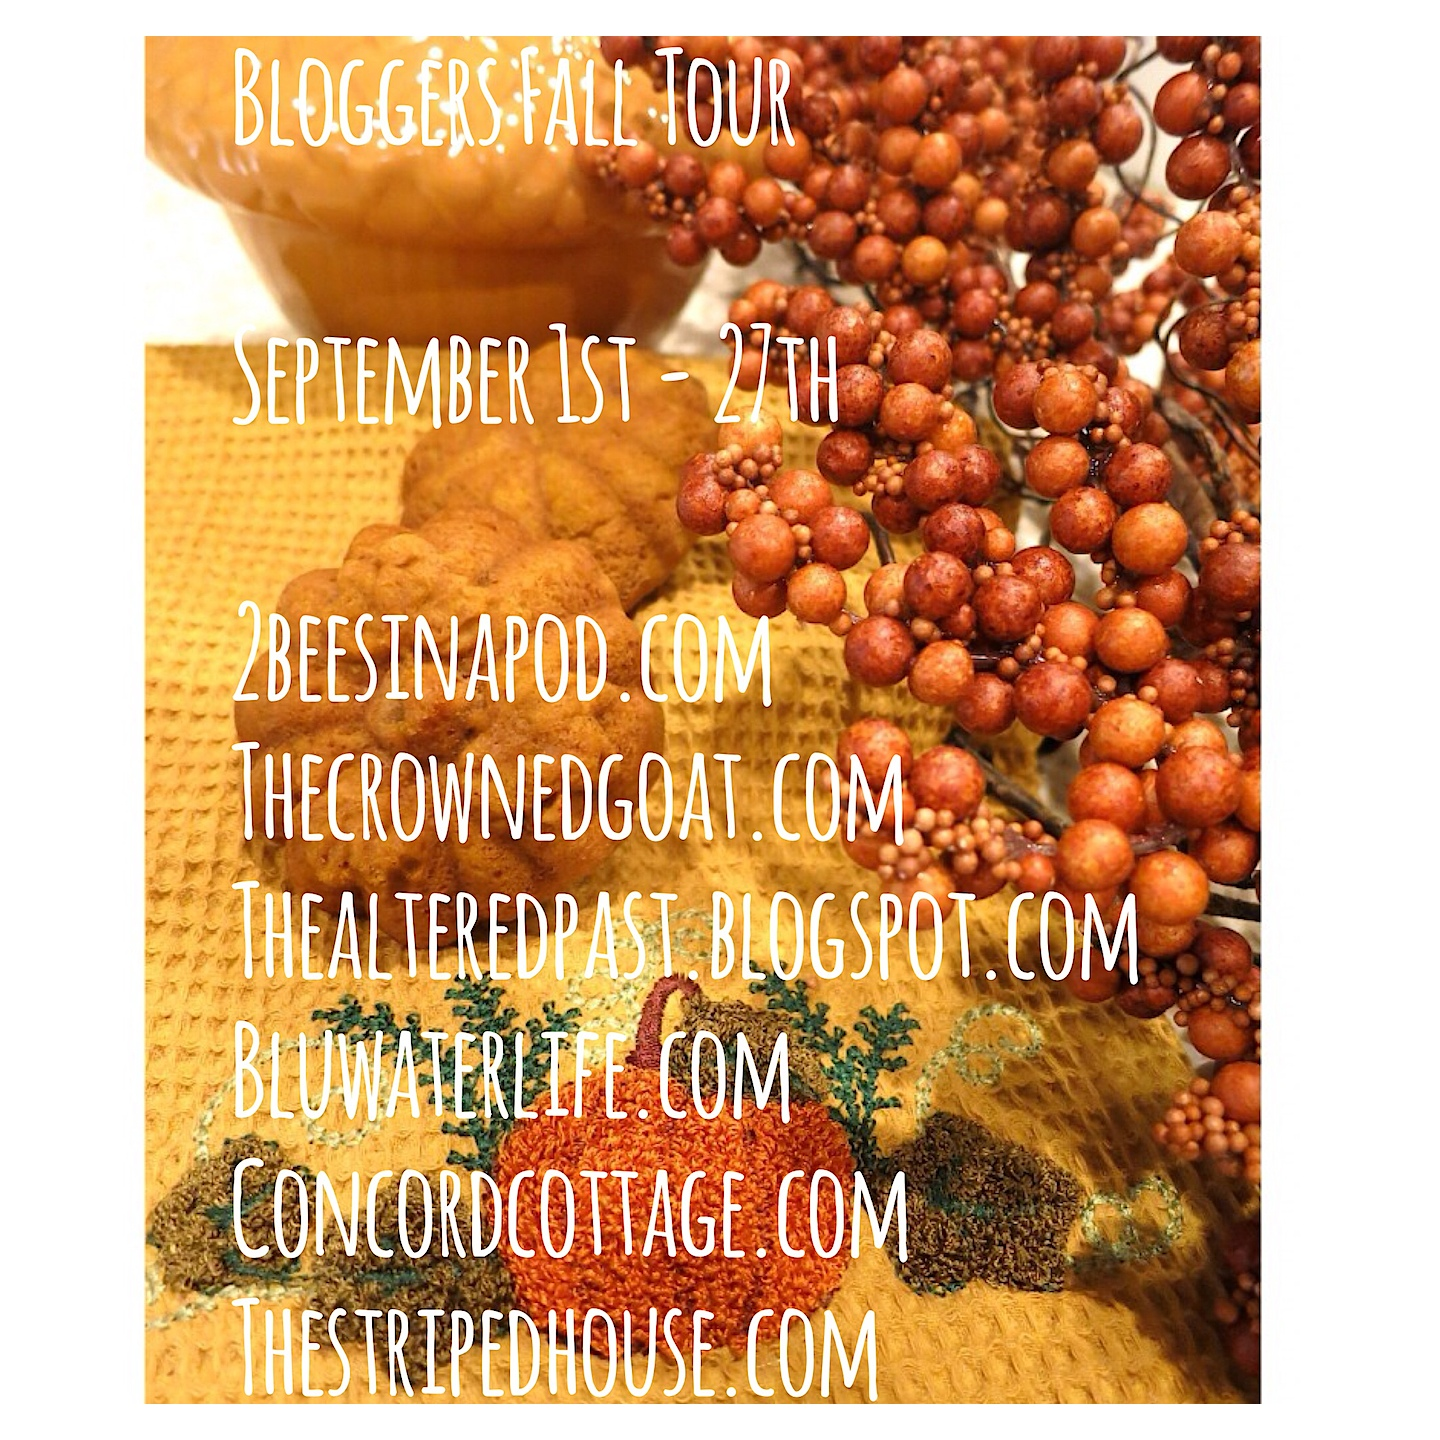 Fall Blog Tour 2014